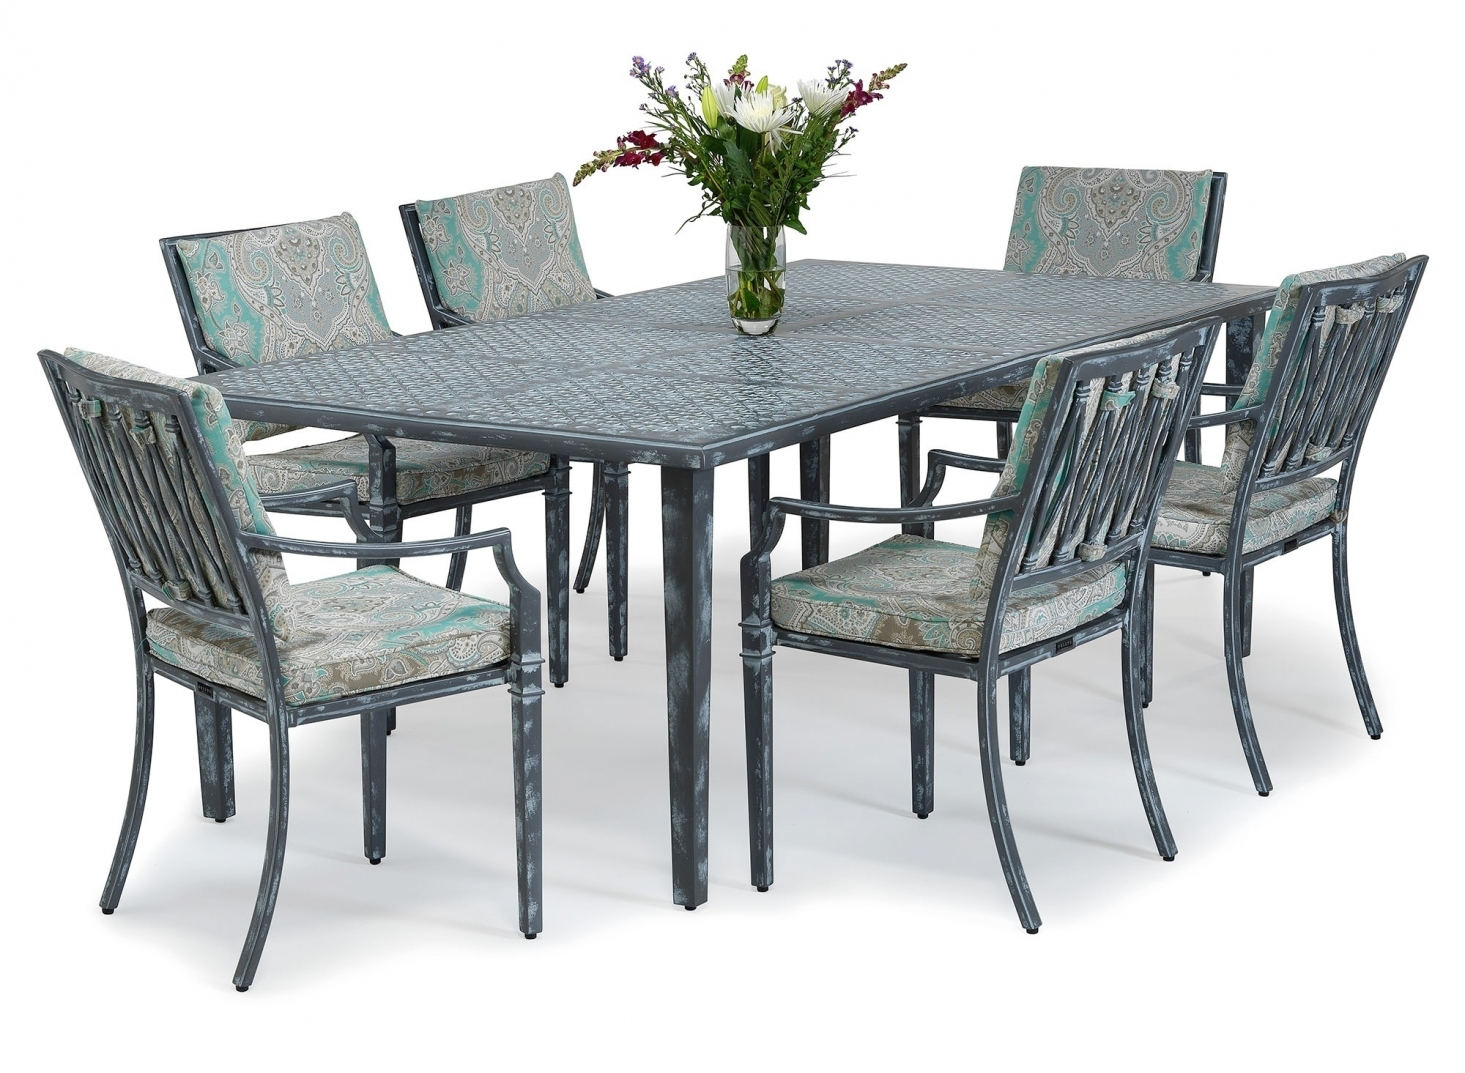 Sienna Metal Outdoor Dining Set, Metal Outdoor Furniture From Inside Newest Outdoor Sienna Dining Tables (Image 16 of 20)